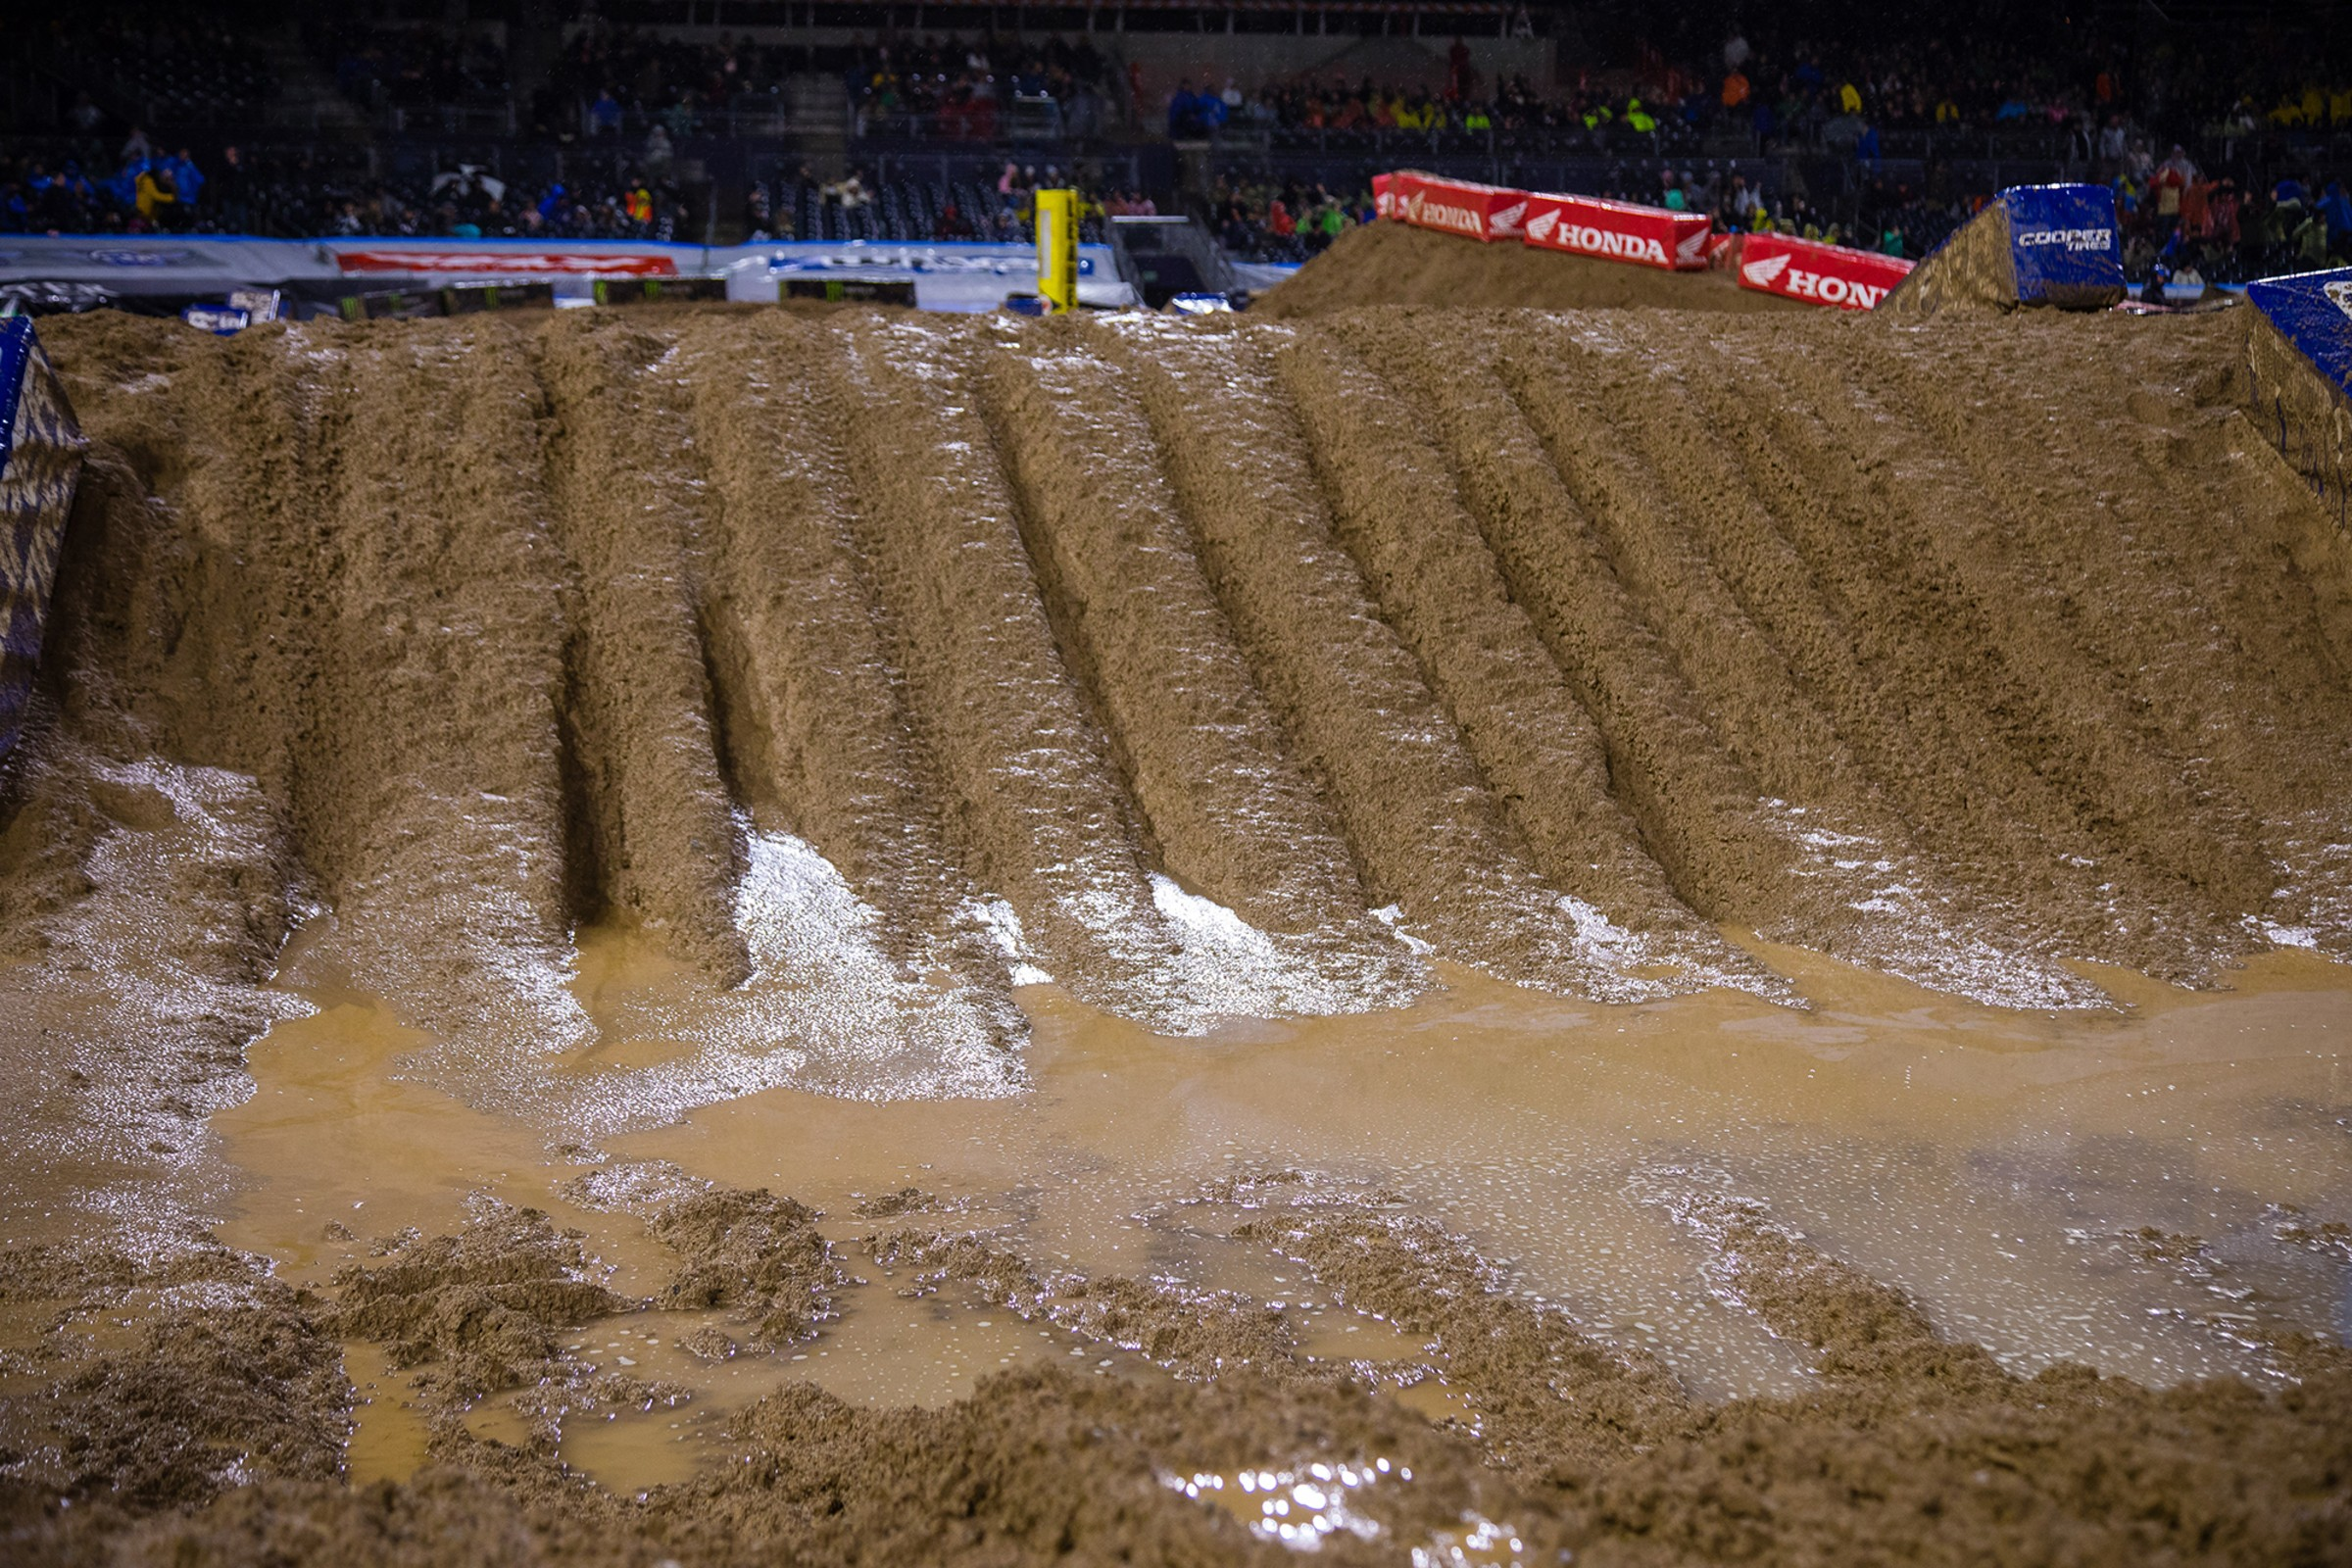 AMA Releases Statement on San Diego Supercross